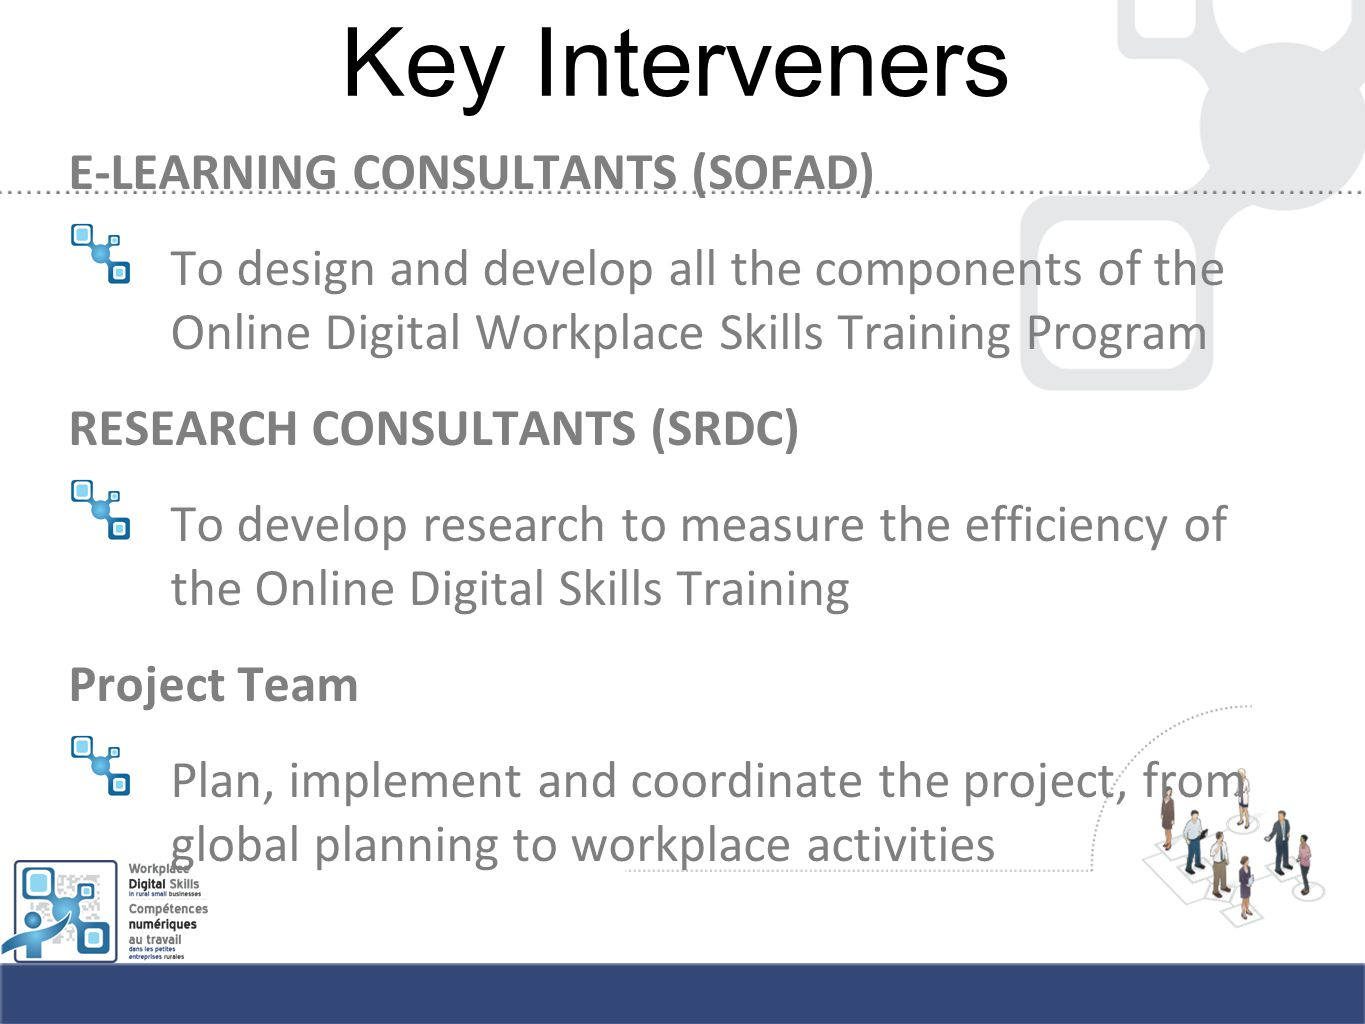 Key Interveners E-LEARNING CONSULTANTS (SOFAD) To design and develop all the components of the Online Digital Workplace Skills Training Program RESEARCH CONSULTANTS (SRDC) To develop research to measure the efficiency of the Online Digital Skills Training Project Team Plan, implement and coordinate the project, from global planning to workplace activities